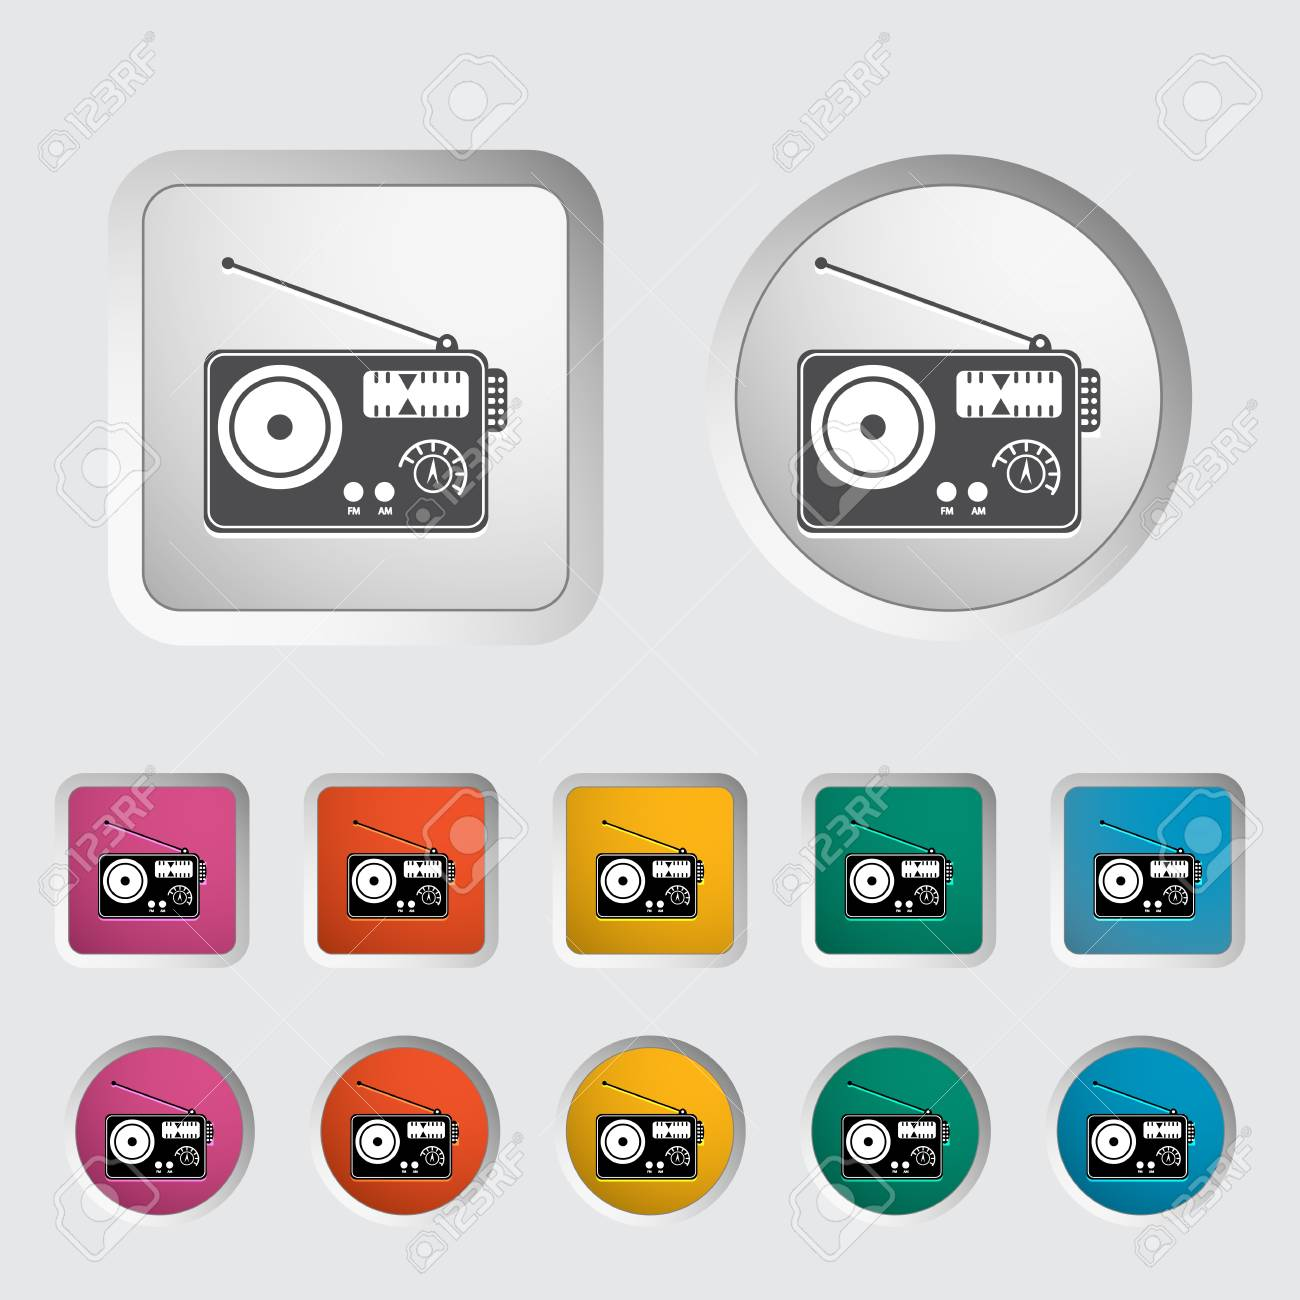 Radio single icon Stock Vector - 18015342